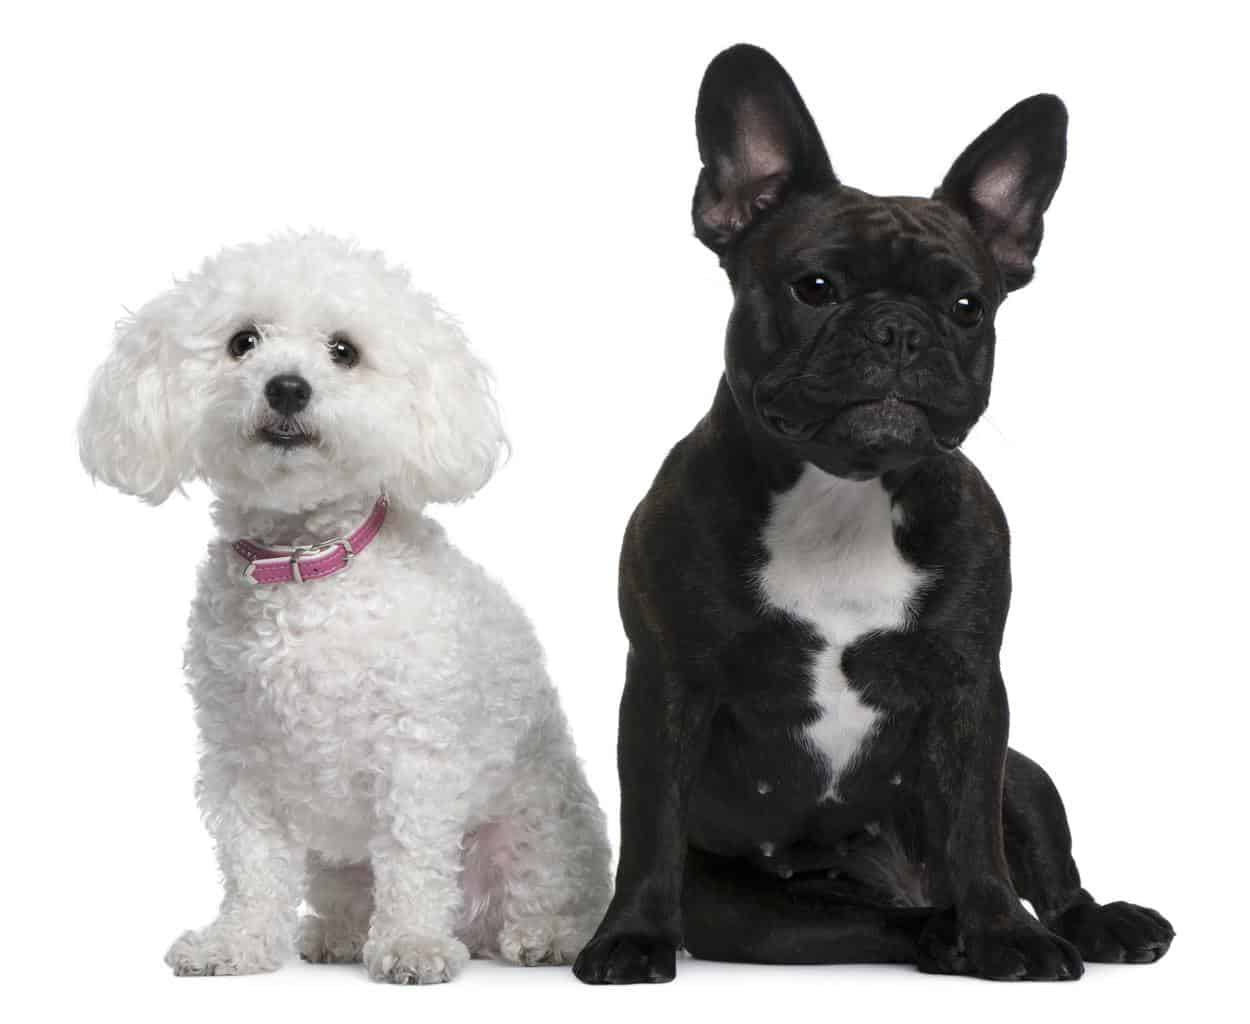 French Bulldog, 18 months old and Bichon Frise, 3 years old, sitting in front of white background